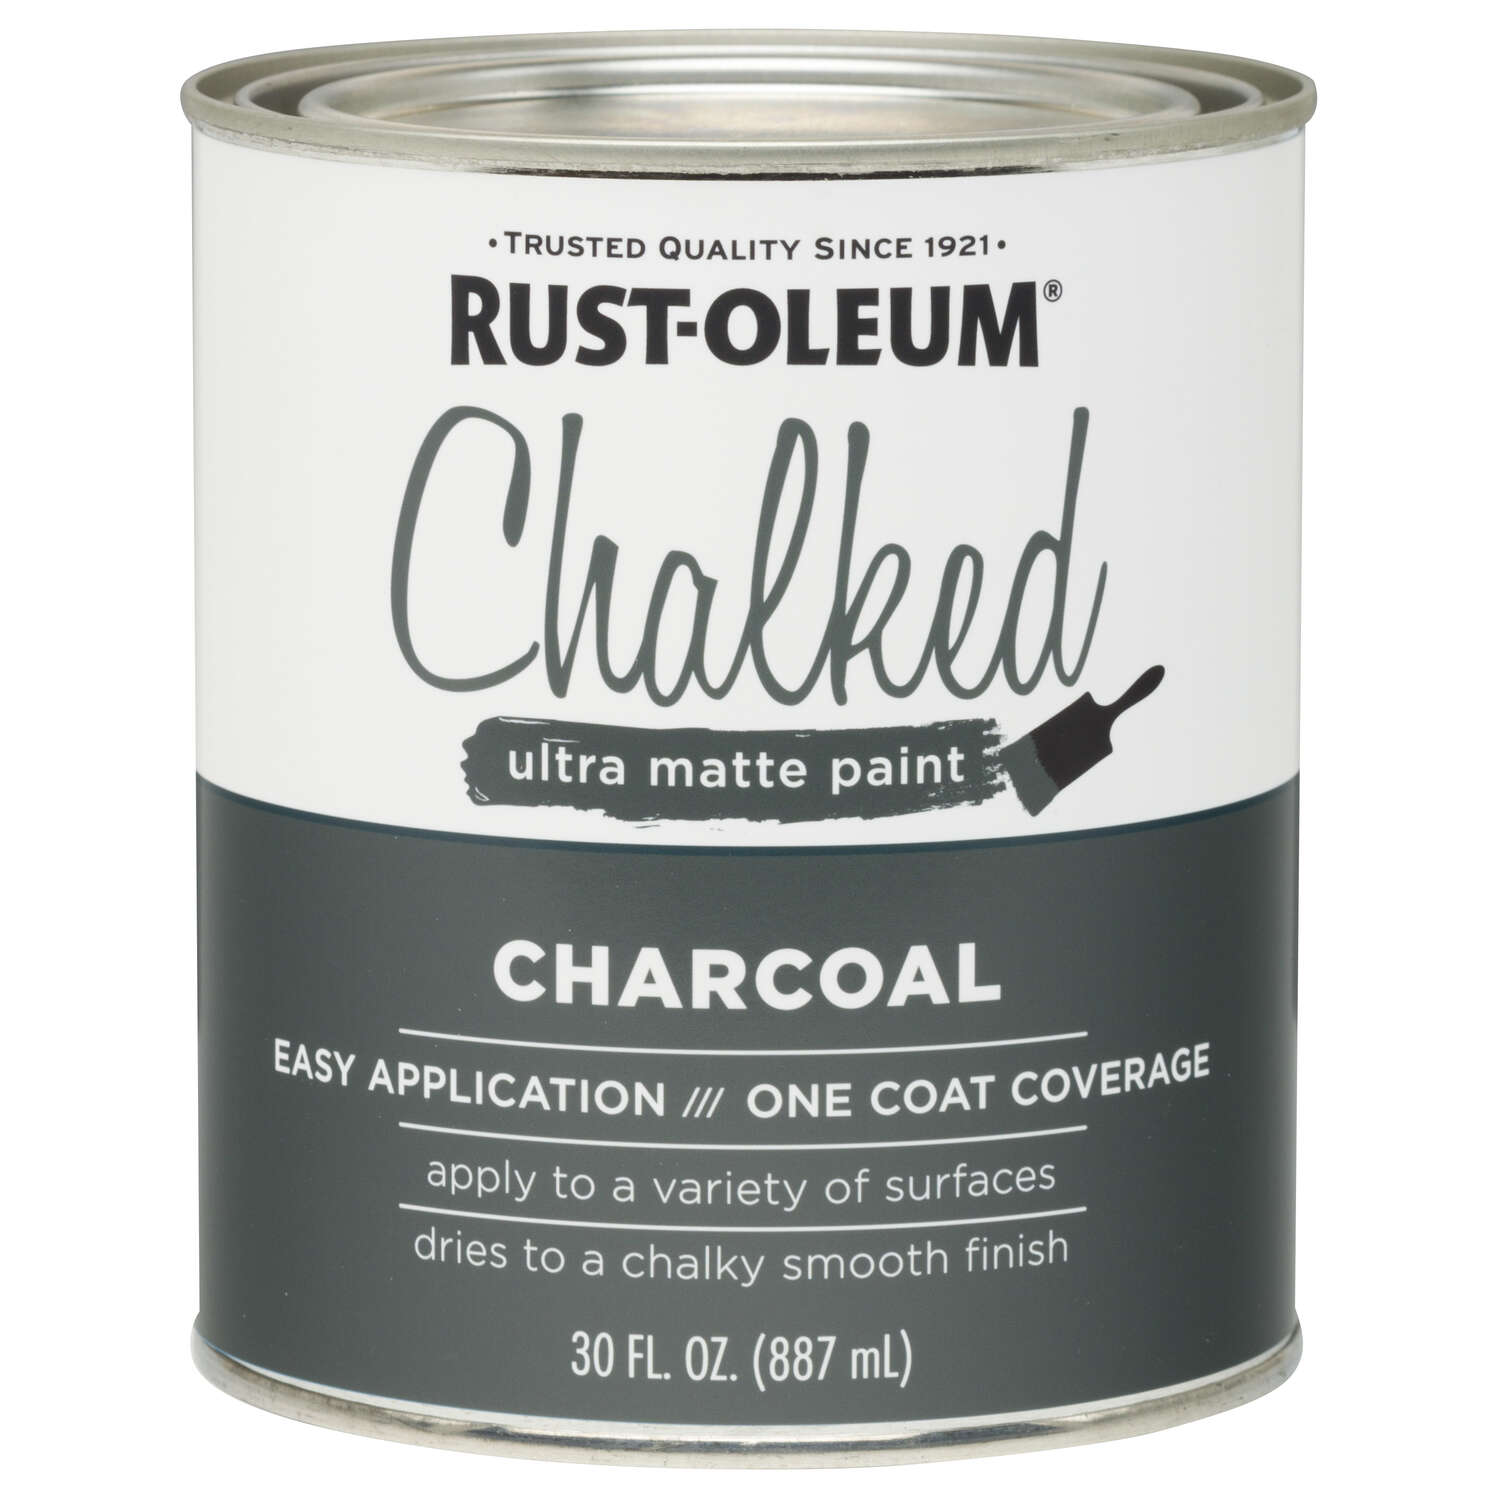 Rust-Oleum  Chalked  Ultra Matte  Charcoal  Water-Based  Acrylic  Chalk Paint  30 oz.